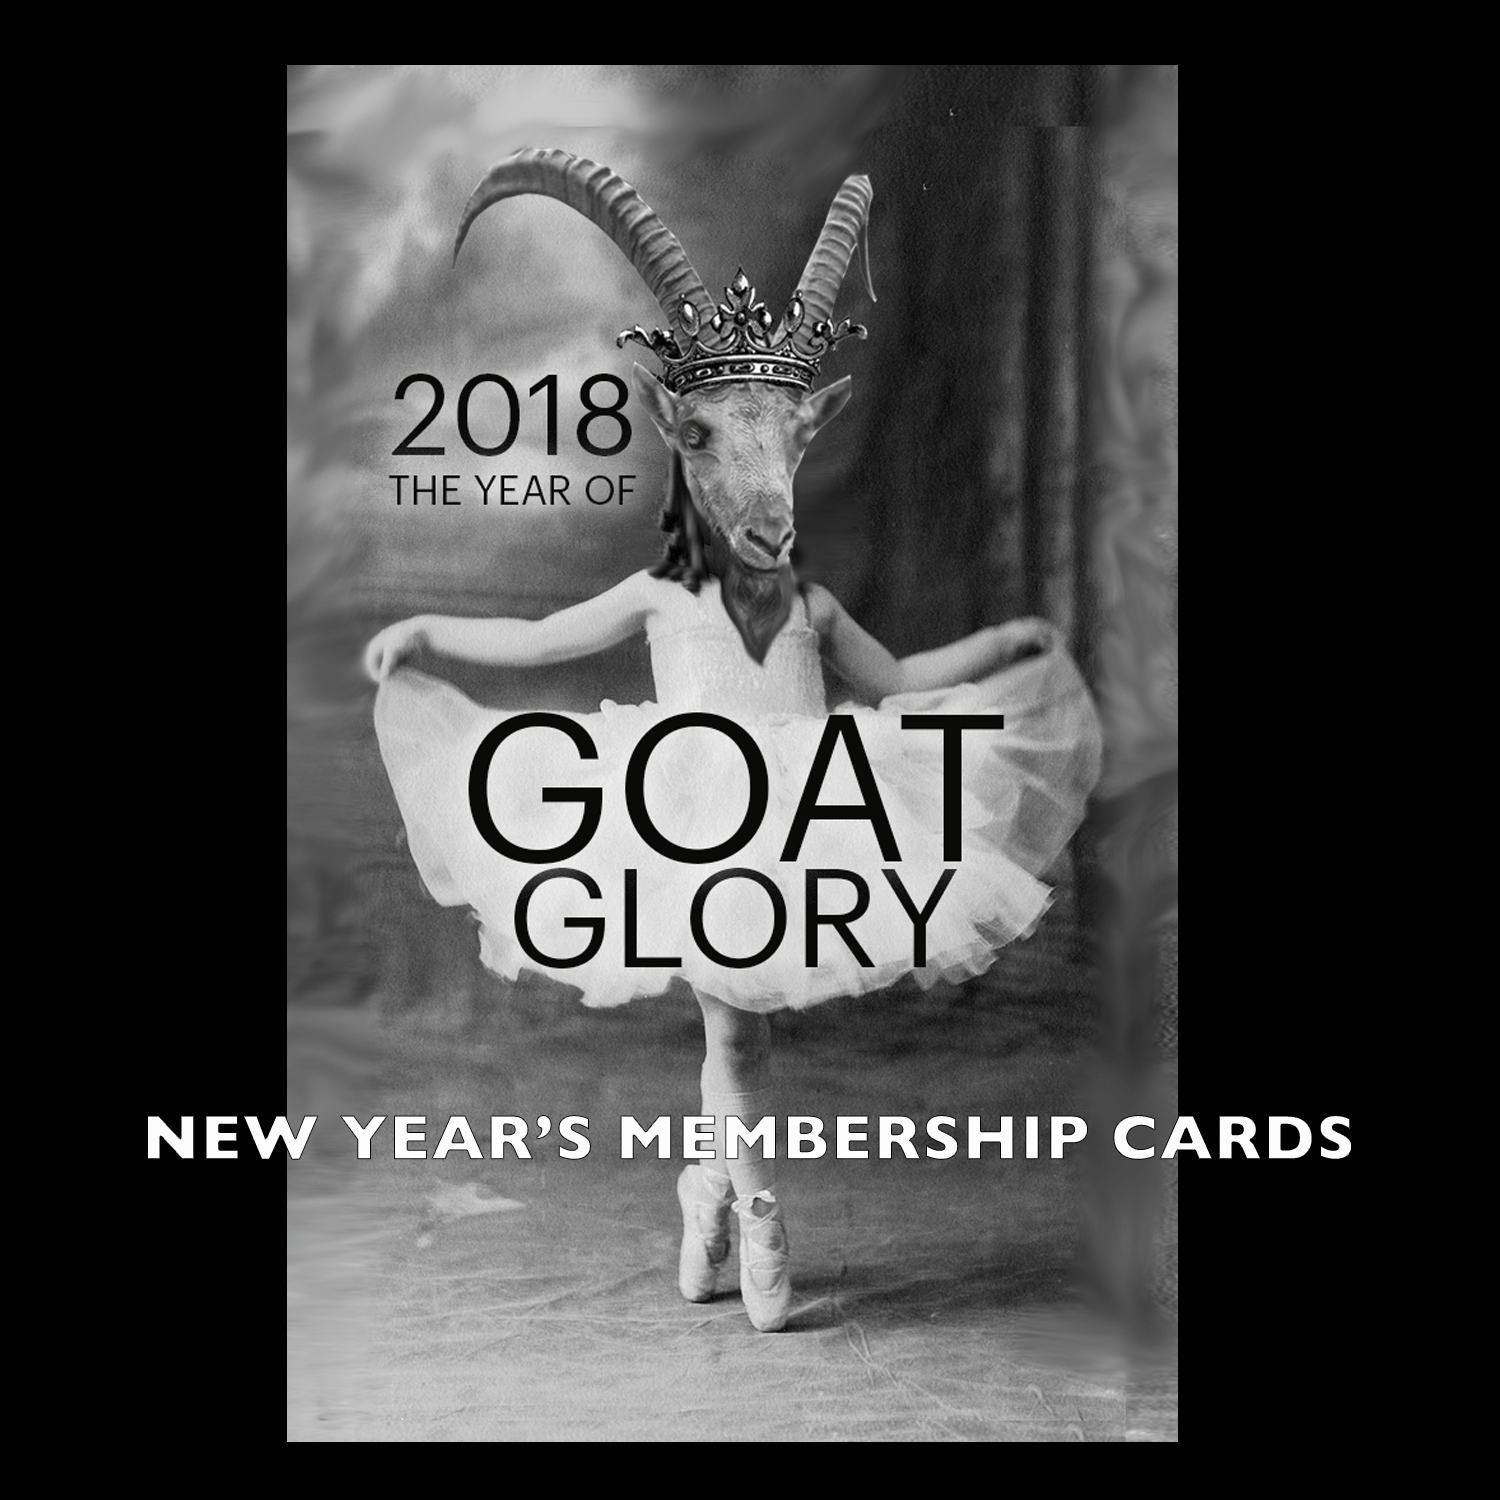 New Years Membership Cards